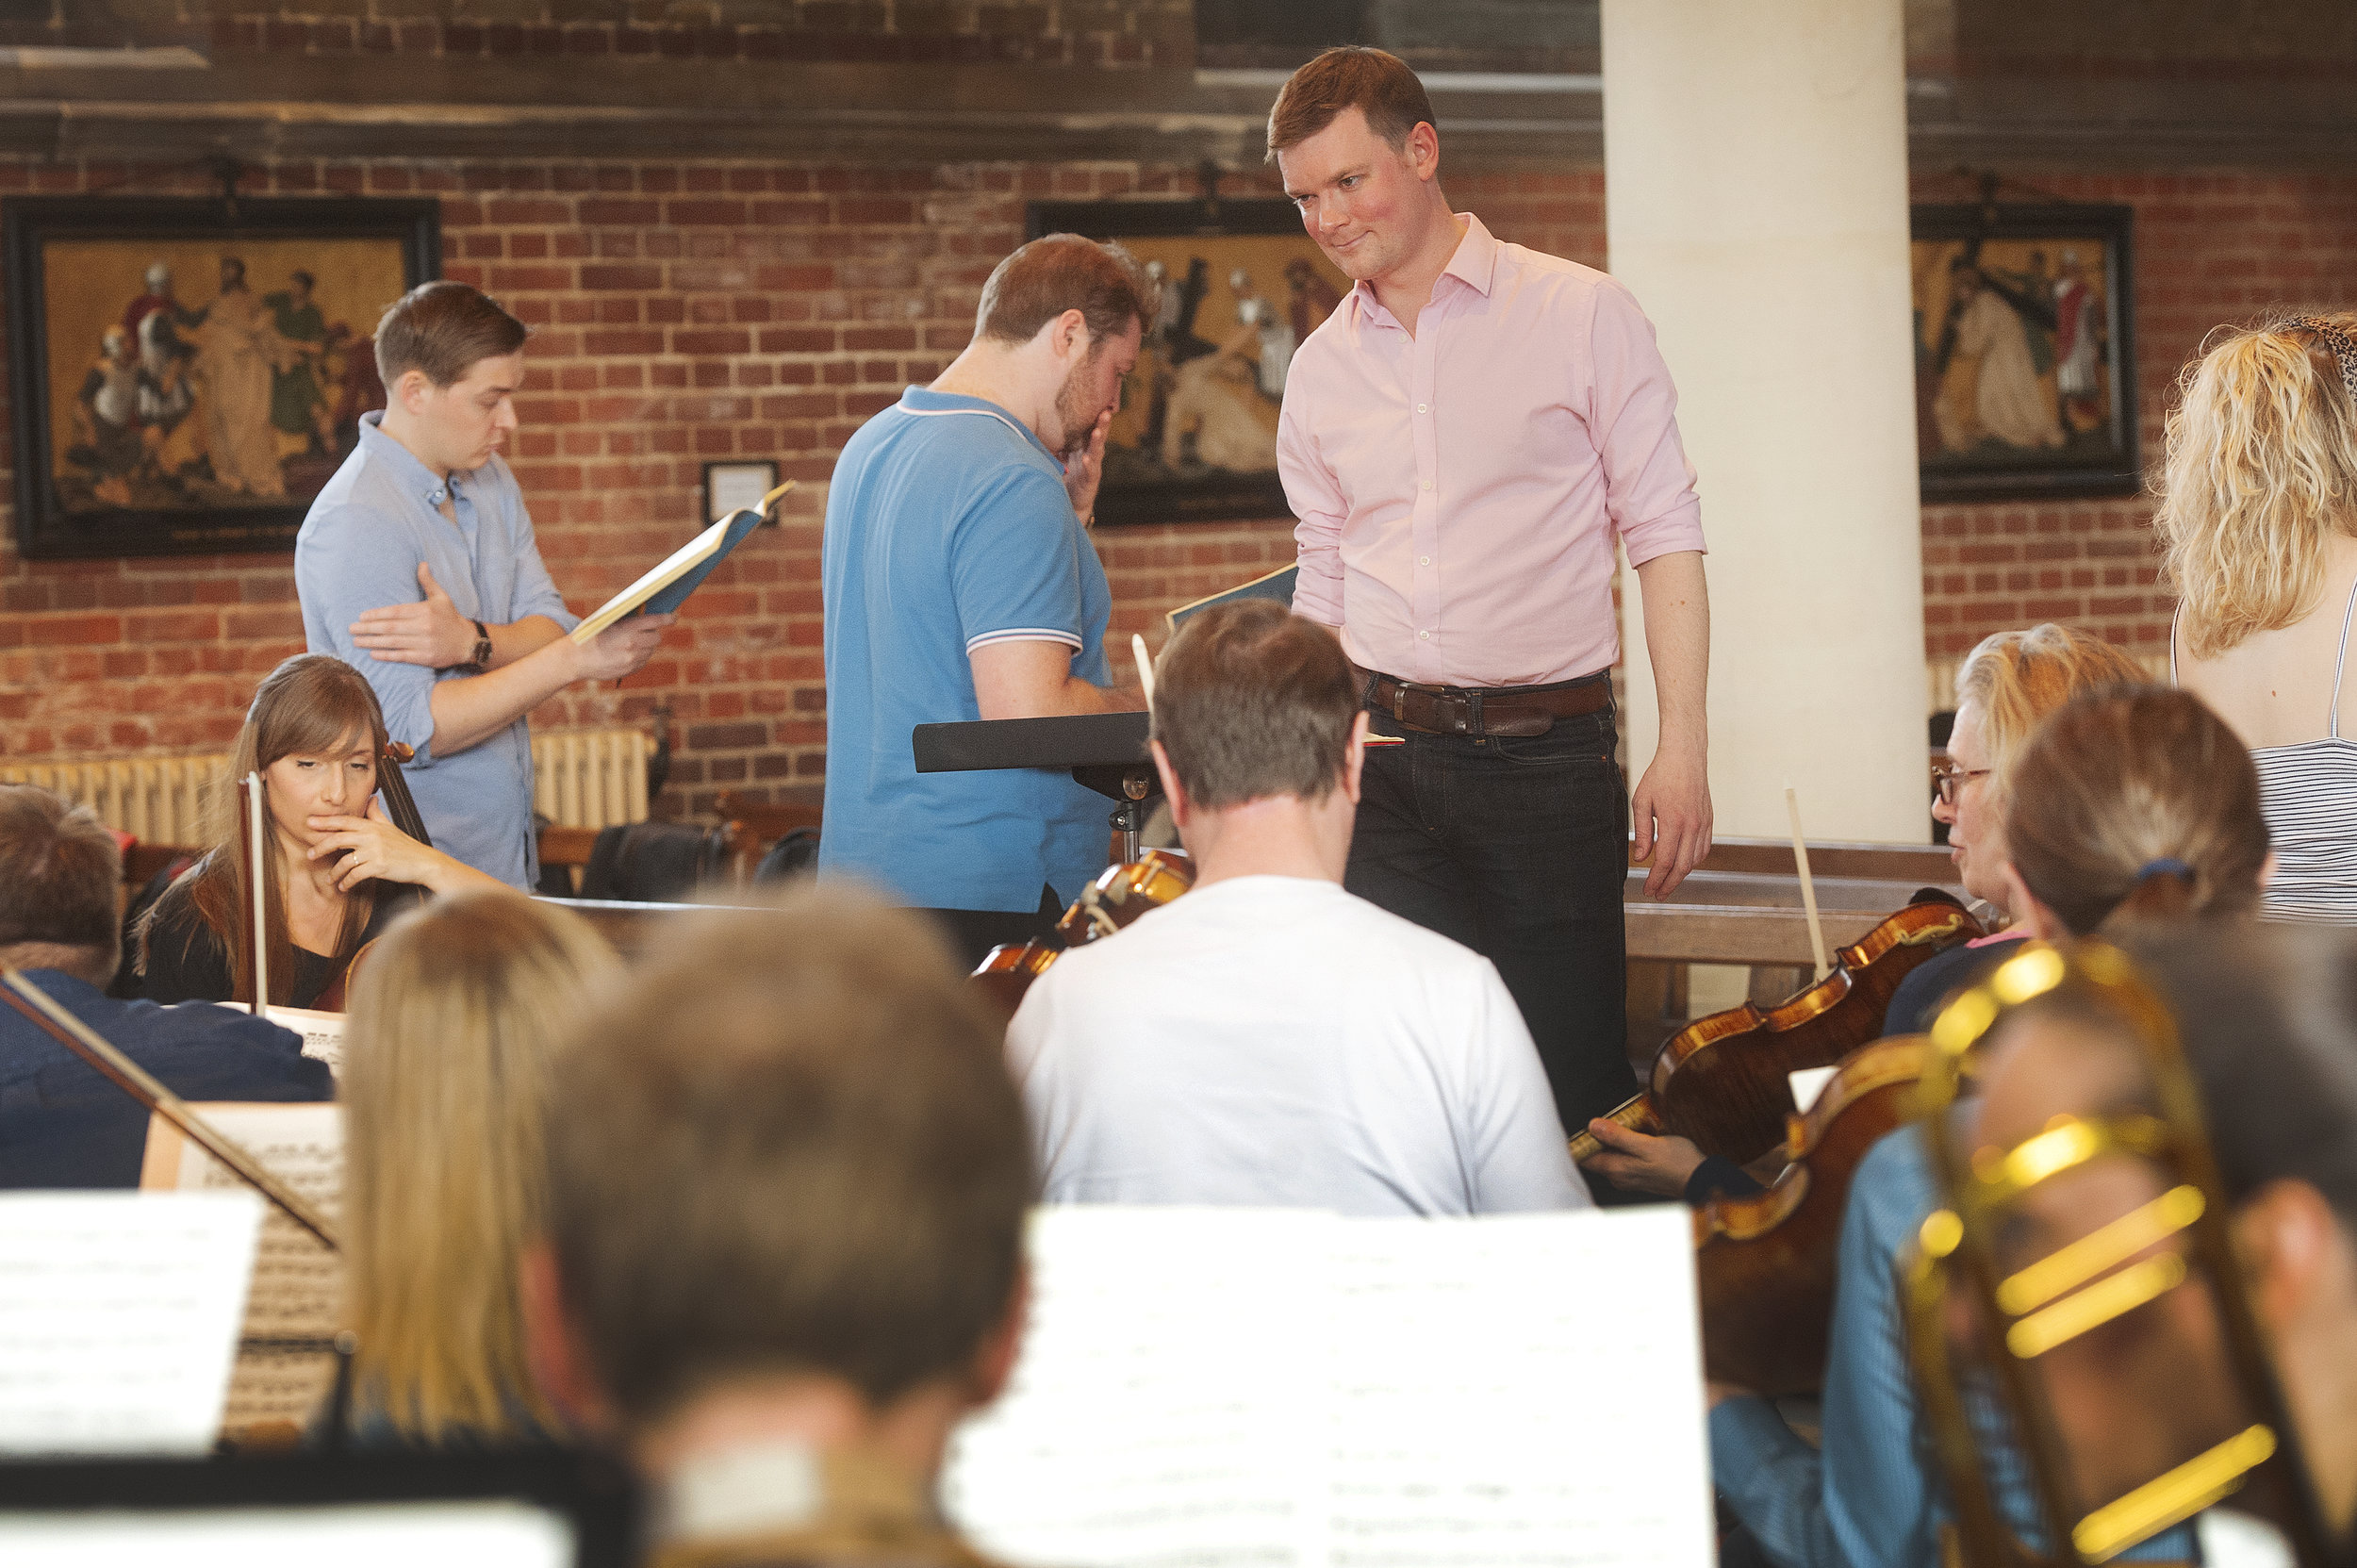 In rehearsal with the Brandenburg Sinfonia and Streatham Choral Society.